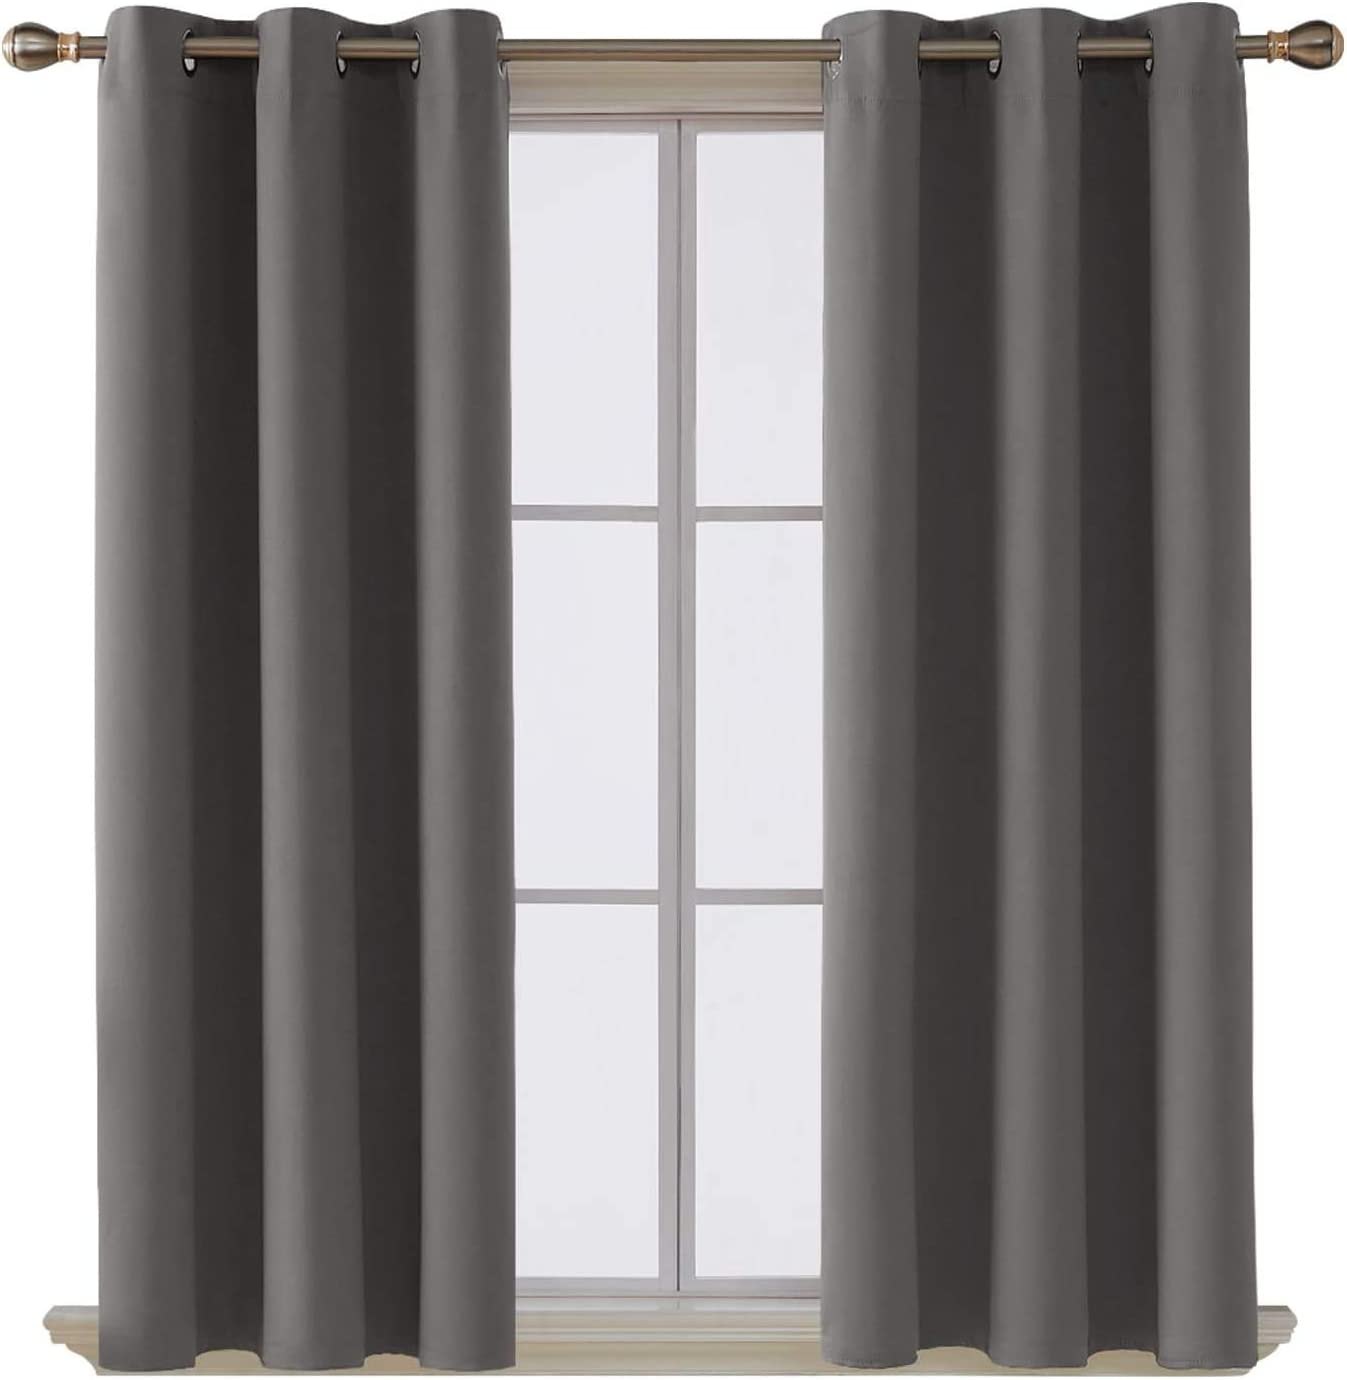 MDS Blackout Curtains いよいよ人気ブランド for 今季も再入荷 Living Bedroom and Thermal Room Insula